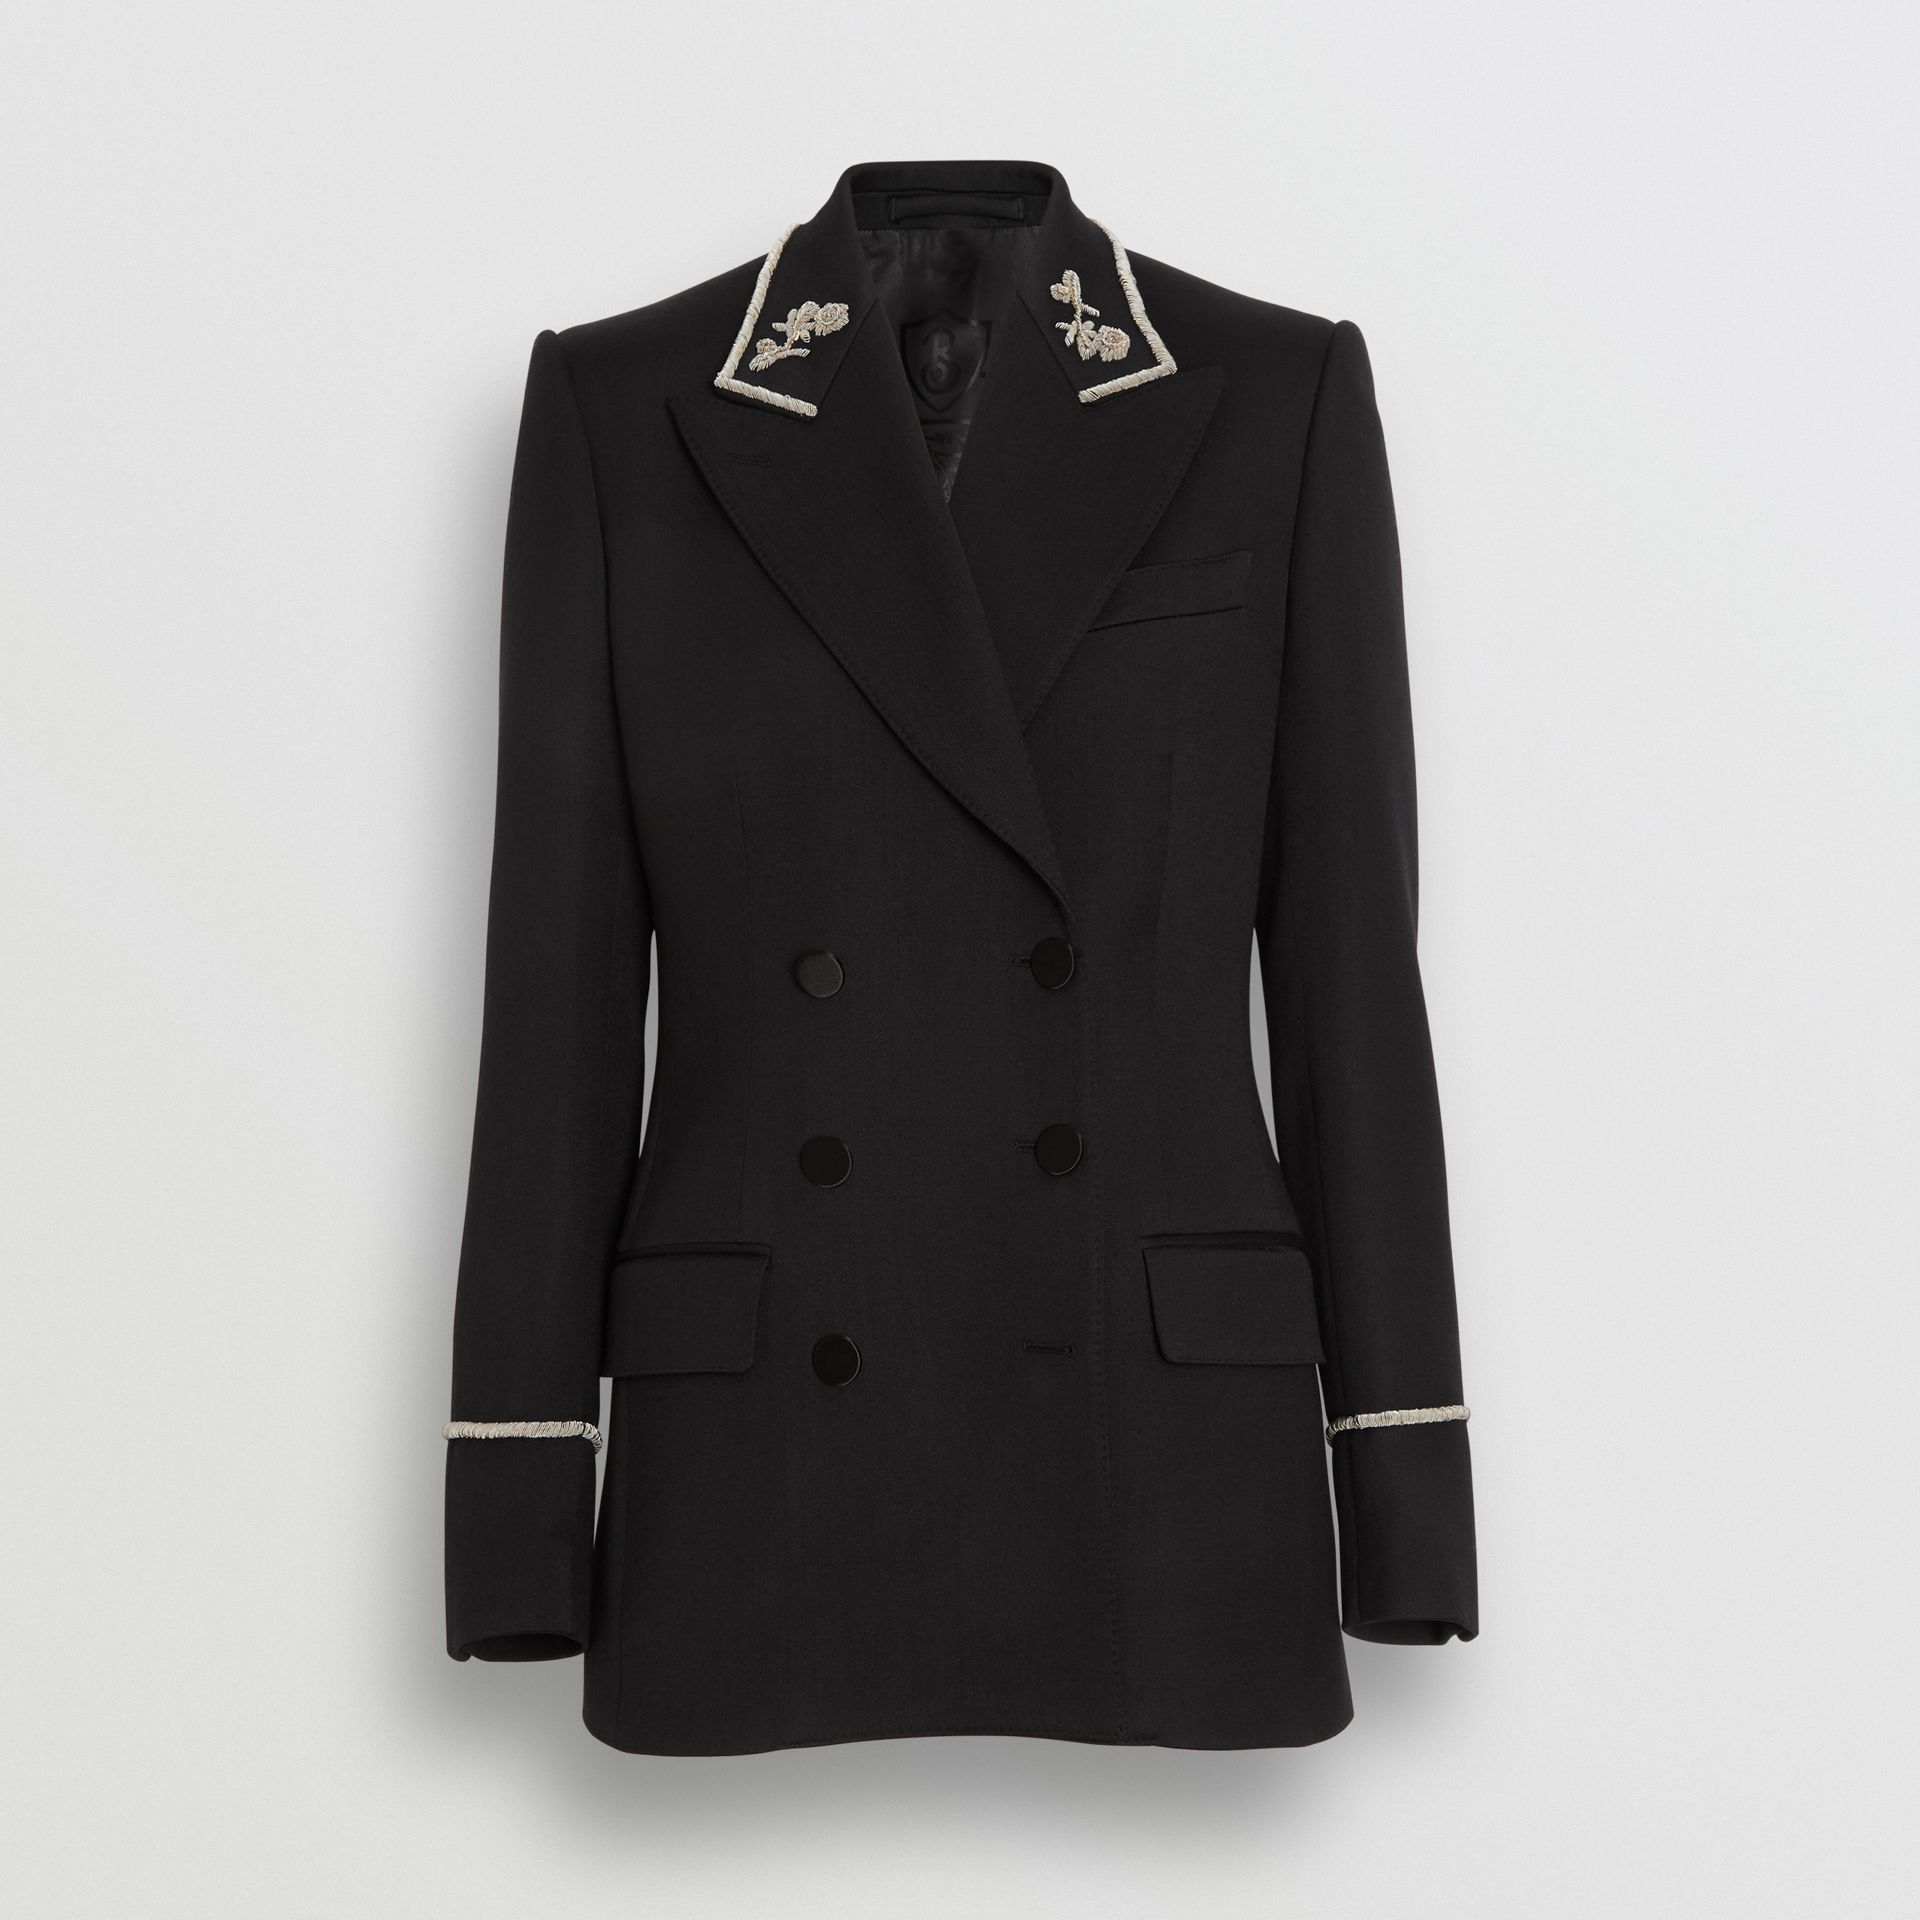 Bullion Stretch Wool Double-breasted Jacket in Black - Women | Burberry - gallery image 3